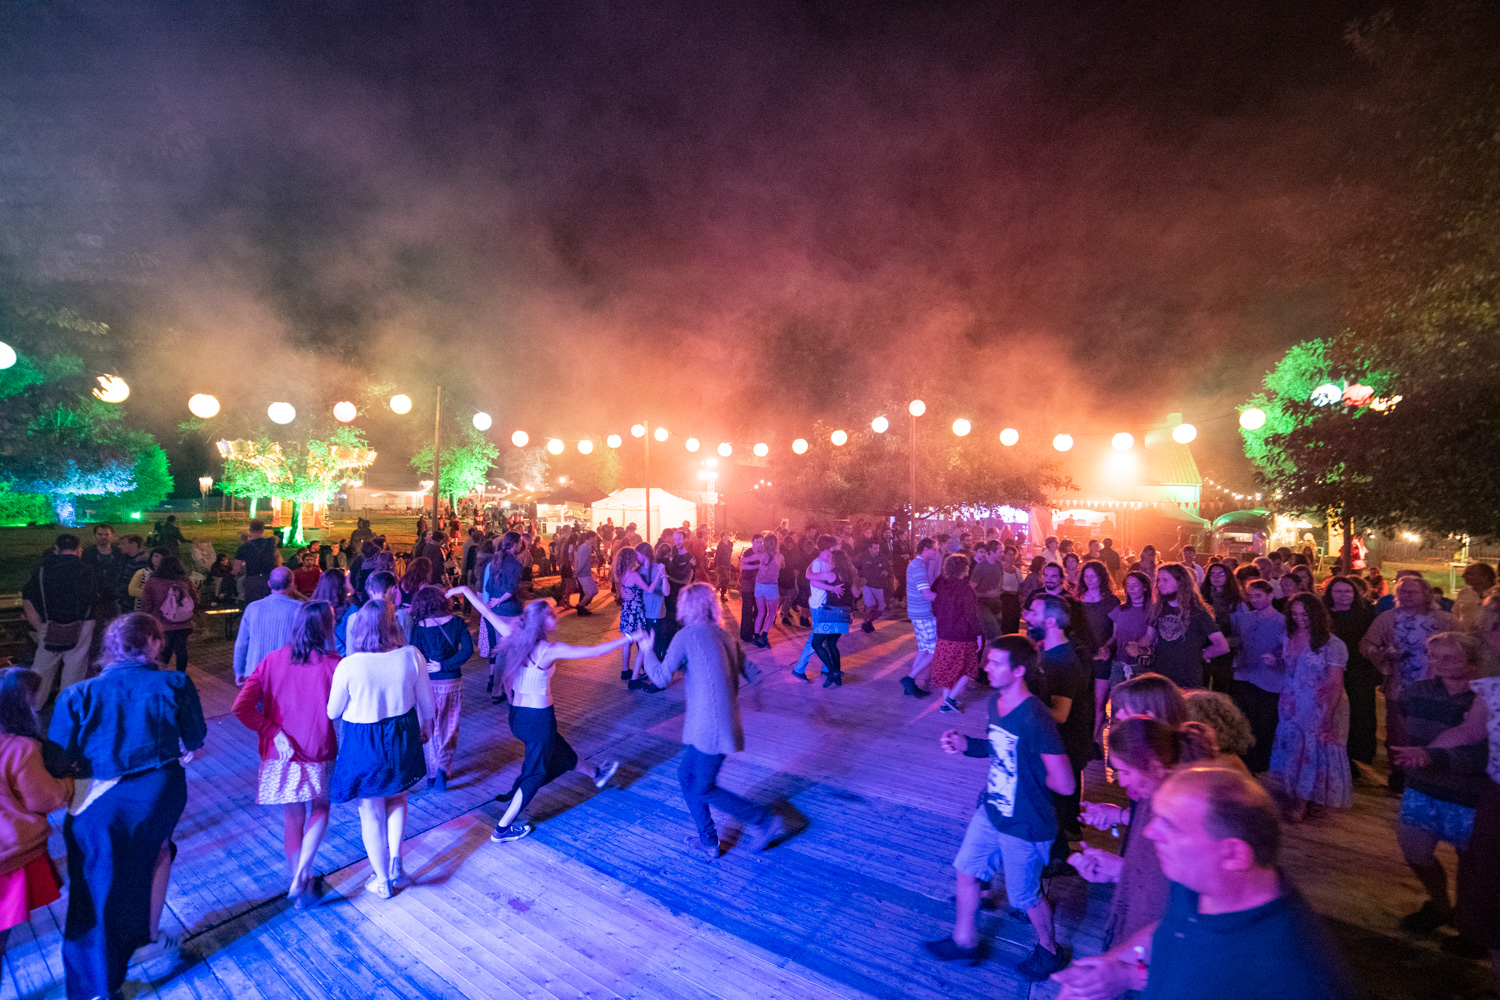 Festival & Party photography • I Believe in Color